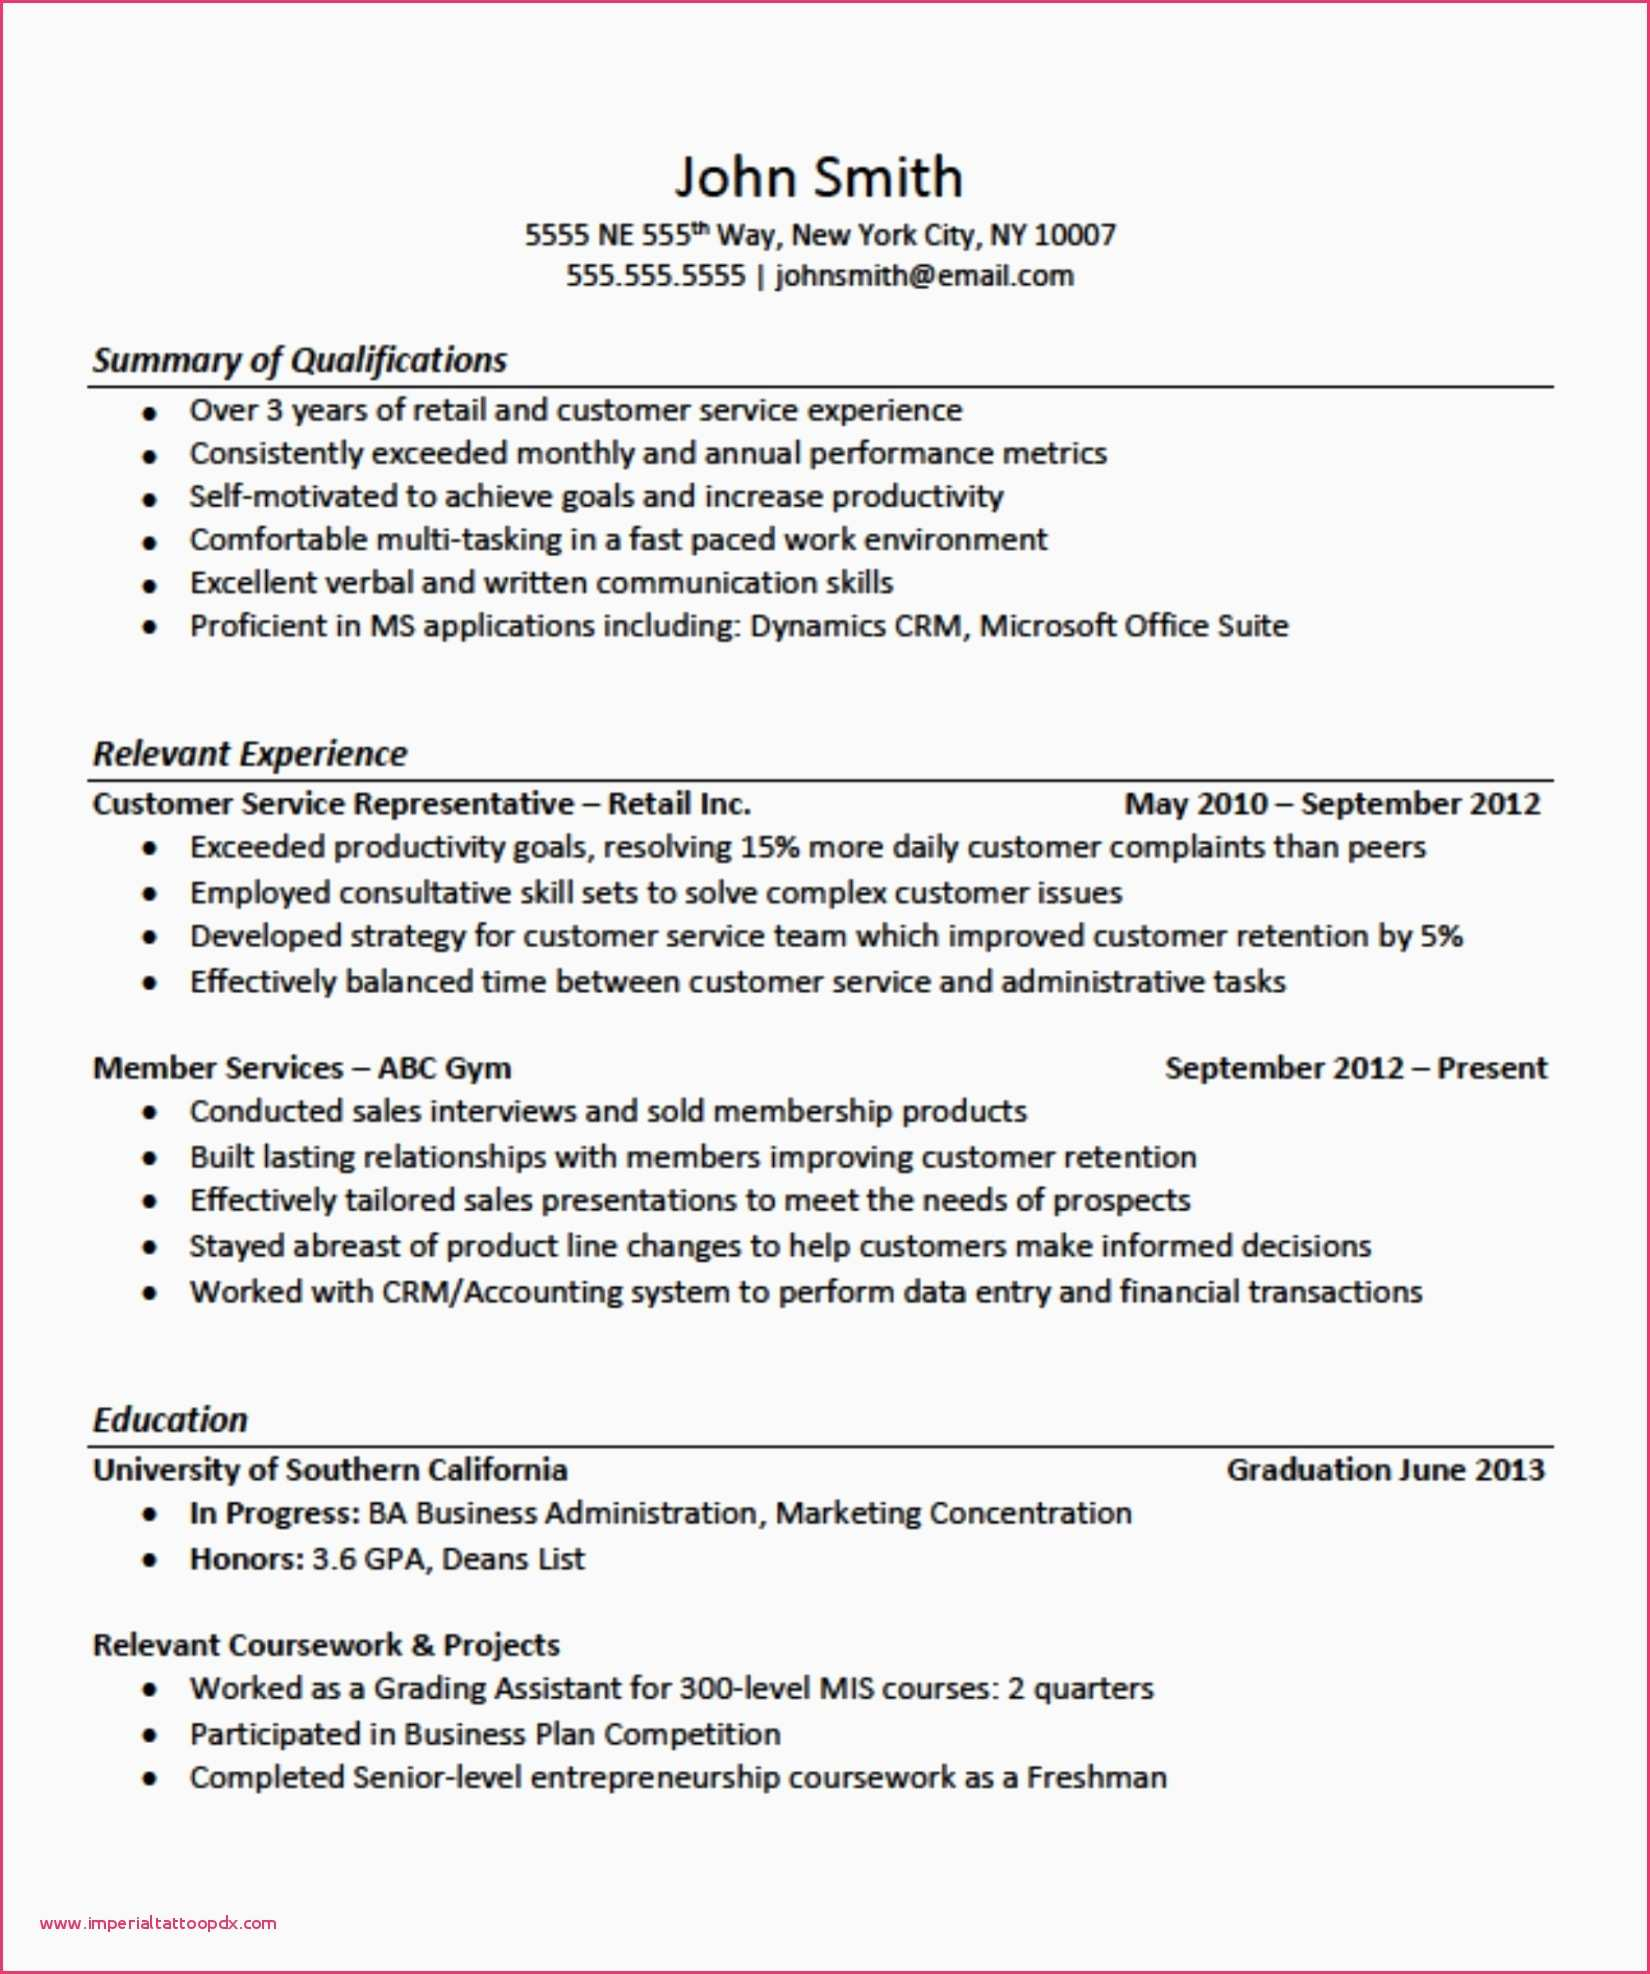 Multitasking Resume - Sample Resume with Microsoft Fice Experience Resume for No